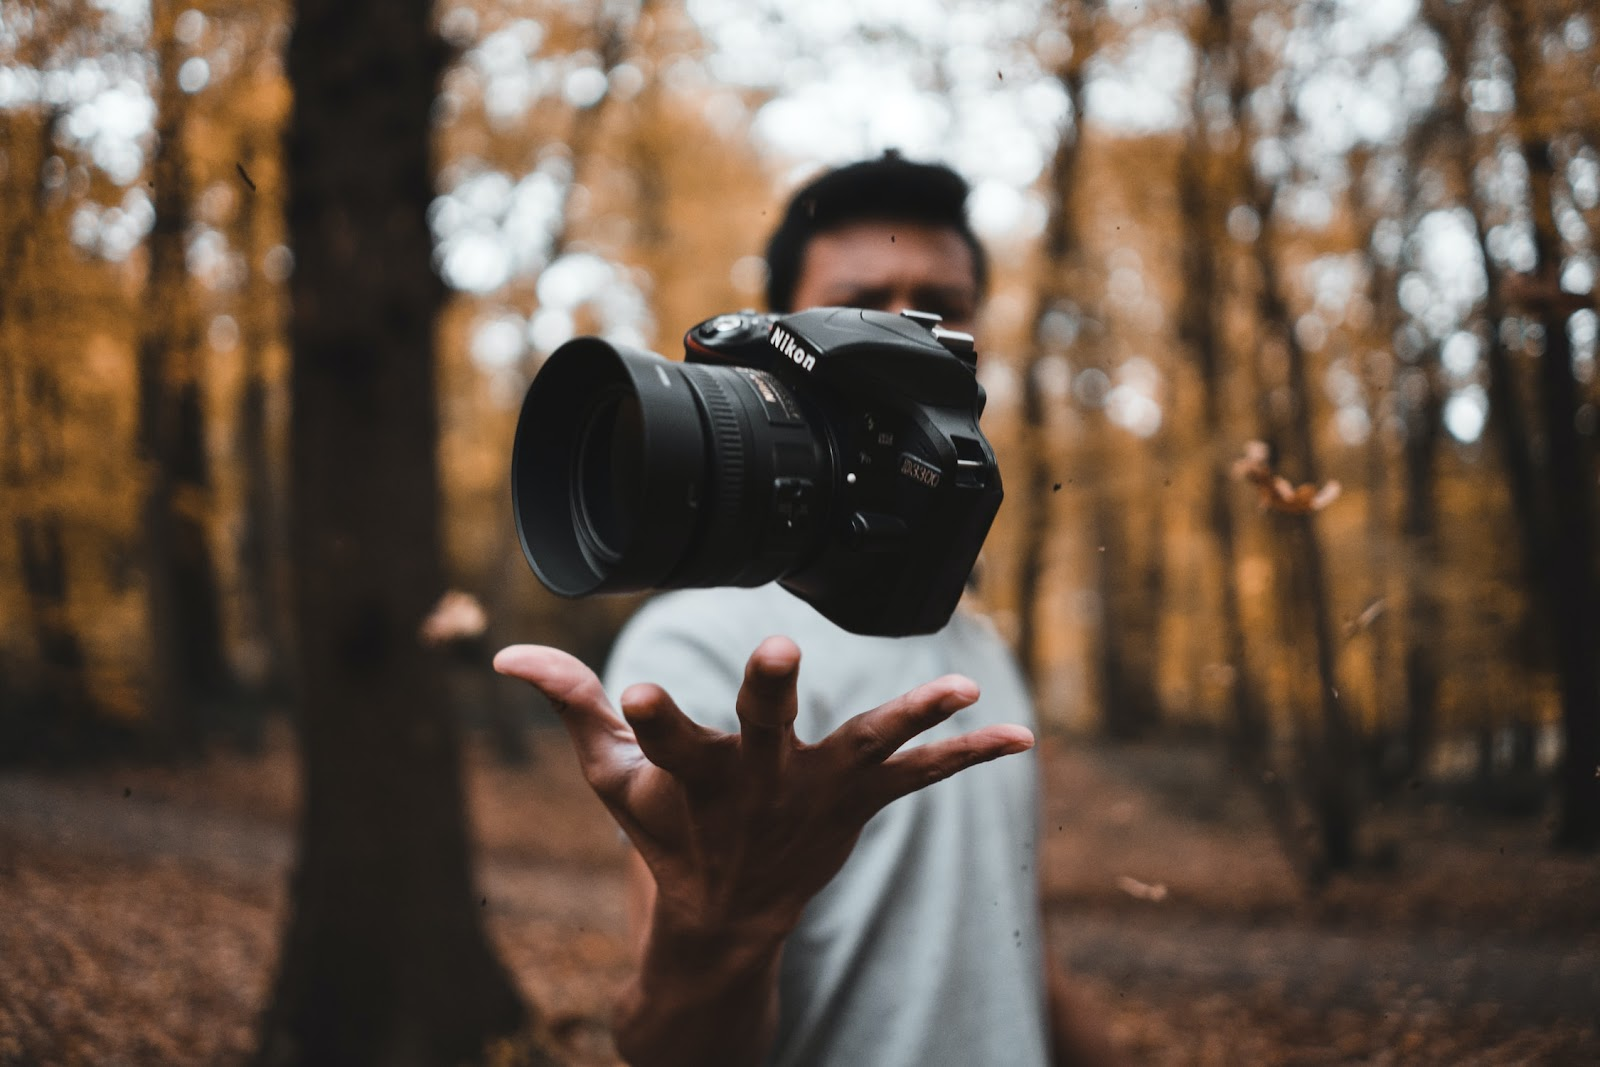 Being in control of your camera